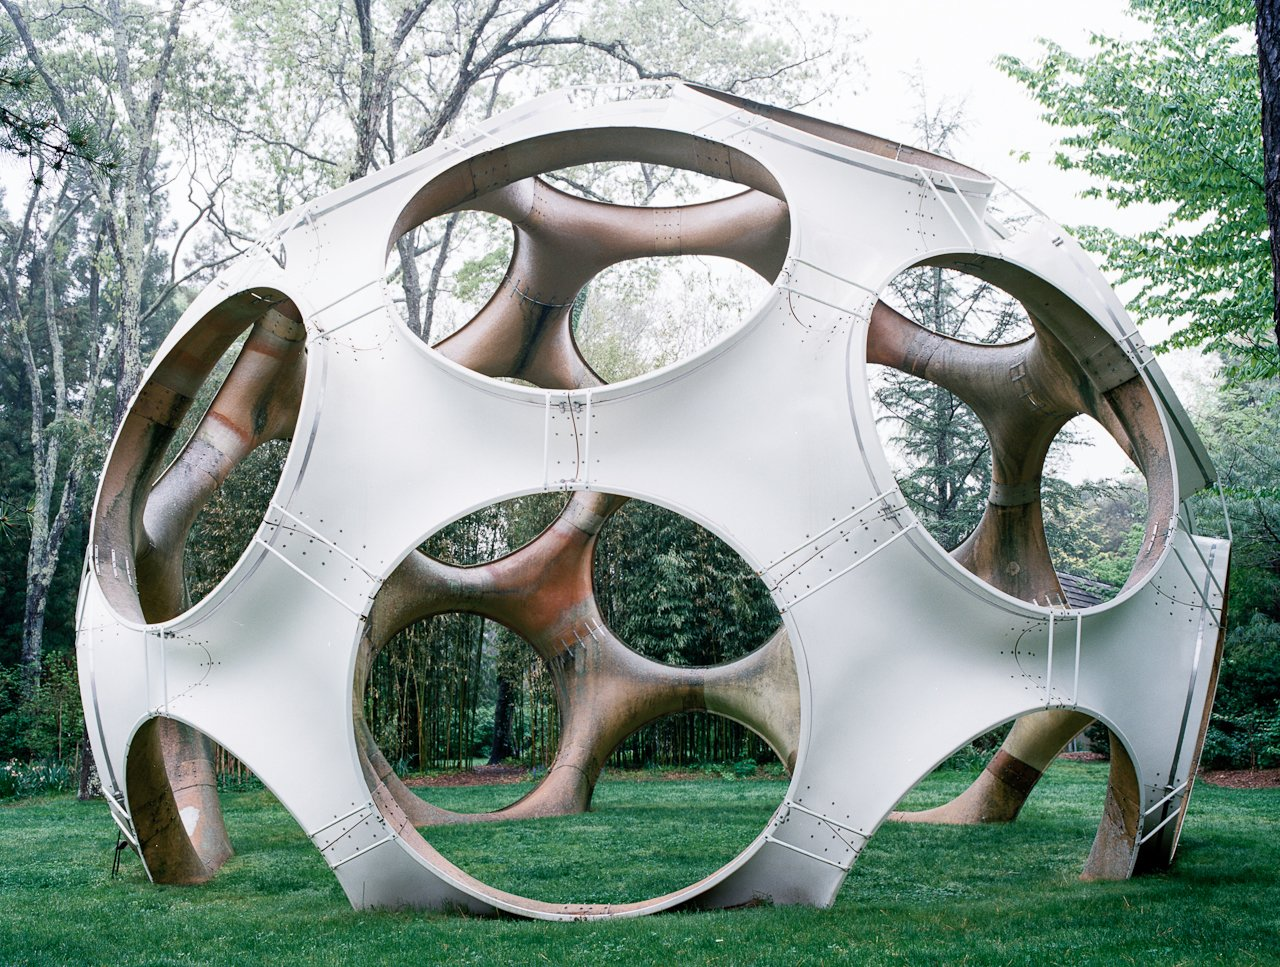 On the second lawn at LongHouse Reserve sits Fly's Eye Dome, fabricated out of fiberglass in 1998 designed by John Kuhtik from a Buckminster Fuller design.  Photo 9 of 12 in Q&A with Textile Designer Jack Lenor Larsen